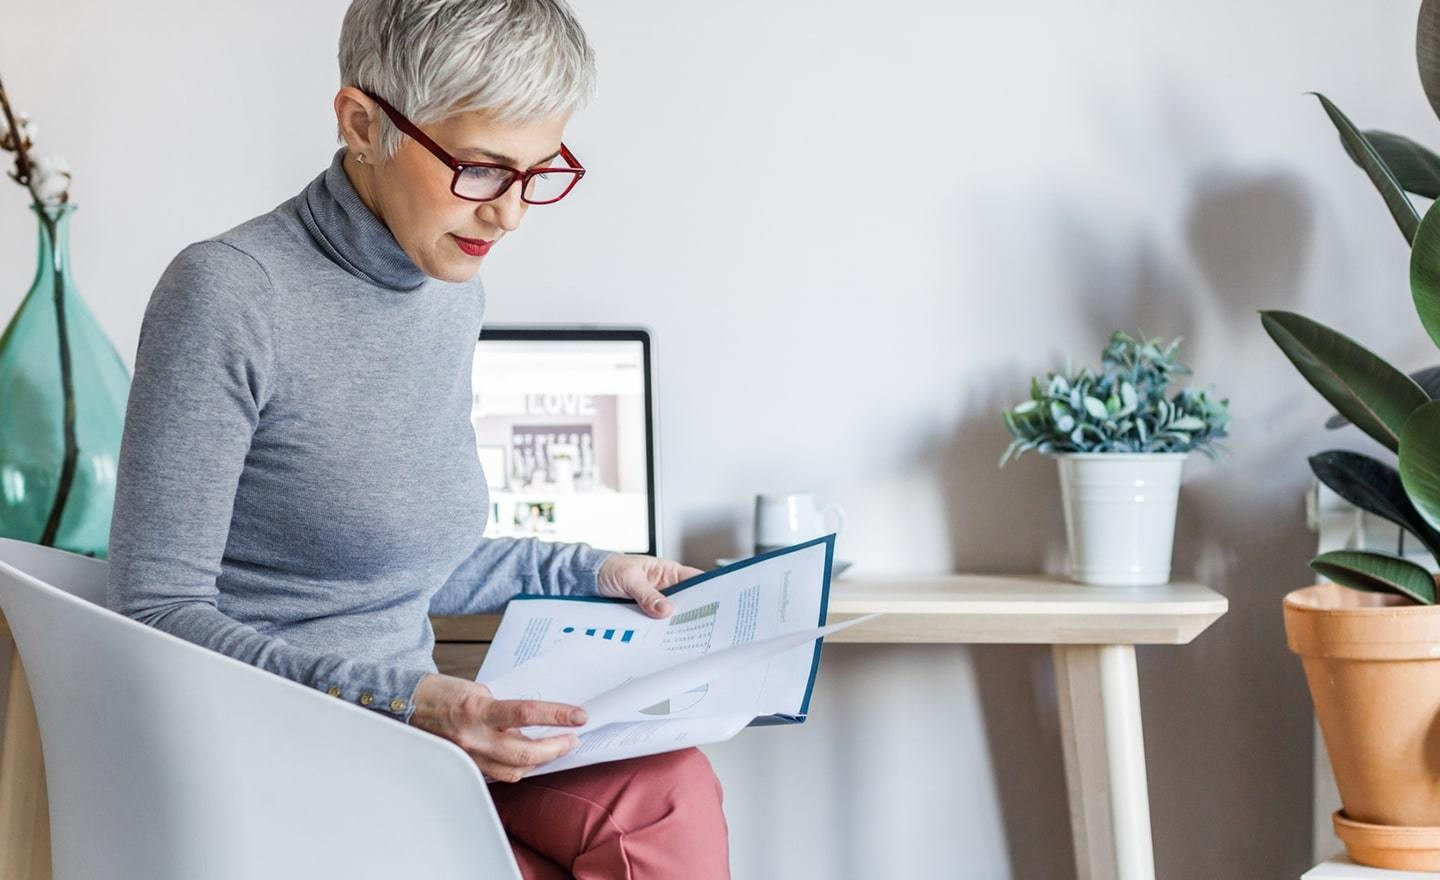 Woman with gray hair reading report at her desk